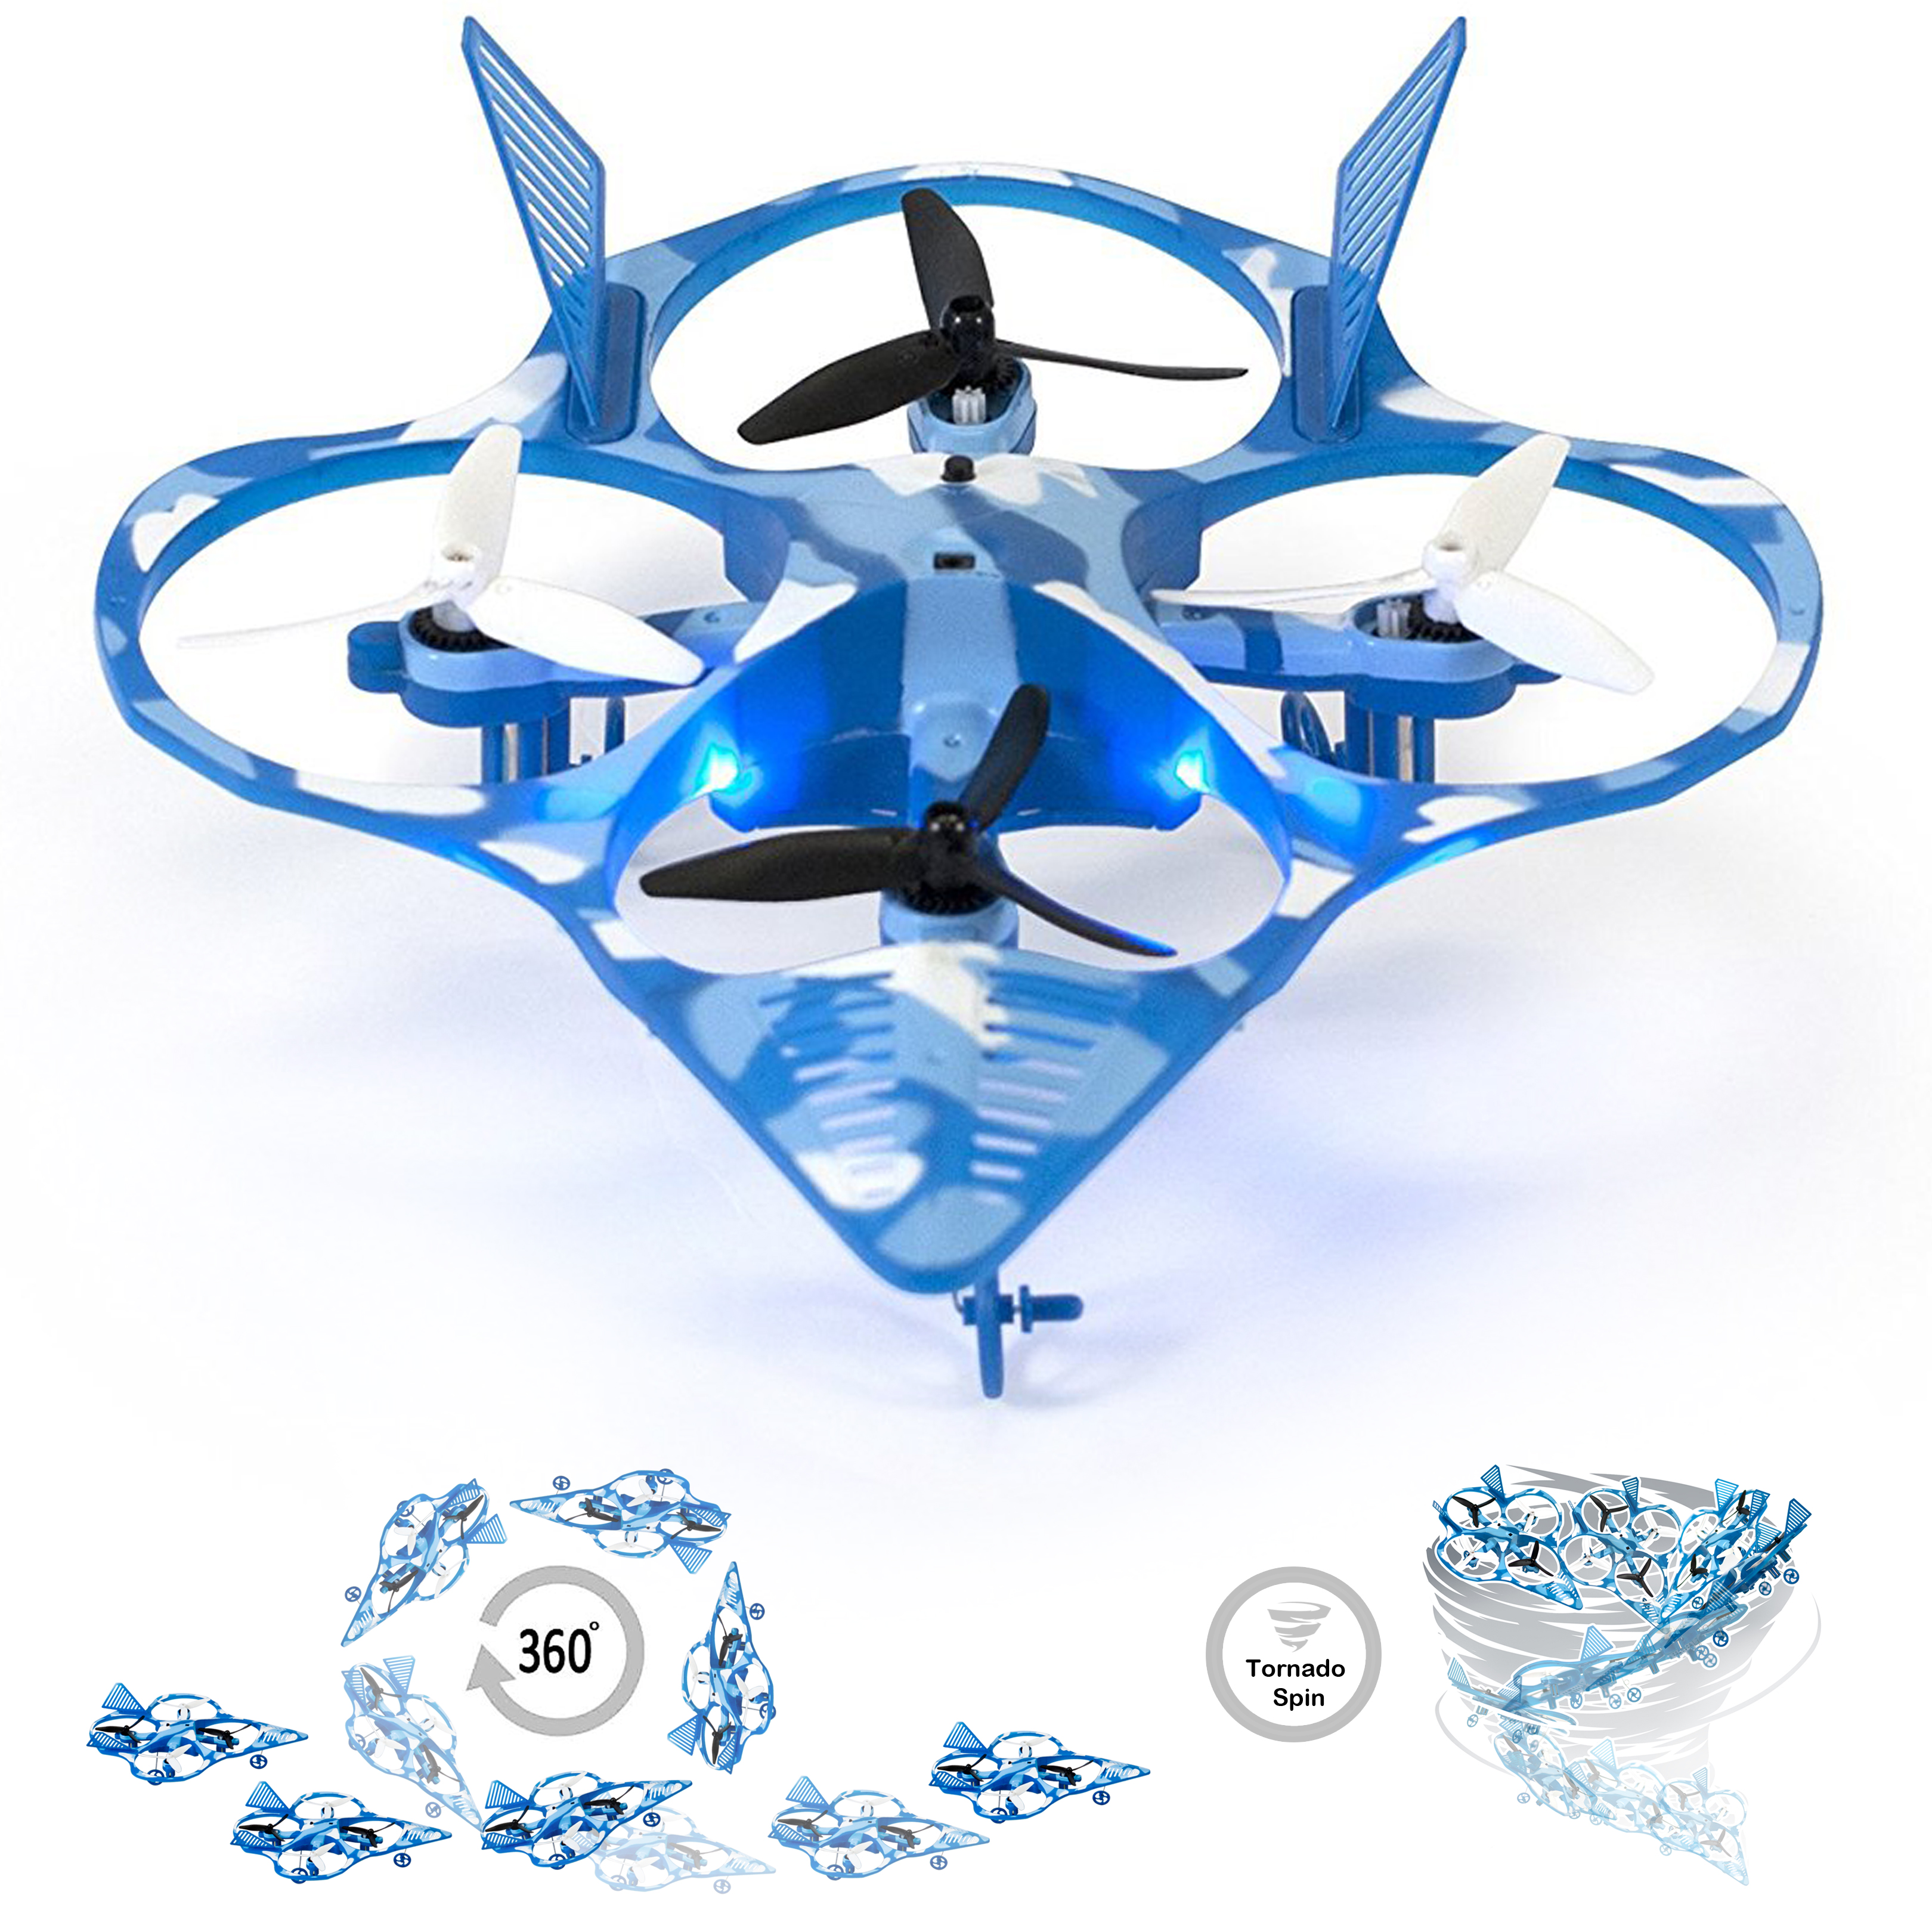 WonderChopper Tornado Stunt Drone, Fighter Jet Quadricopter - Kids Friendly, Free Runway Strip